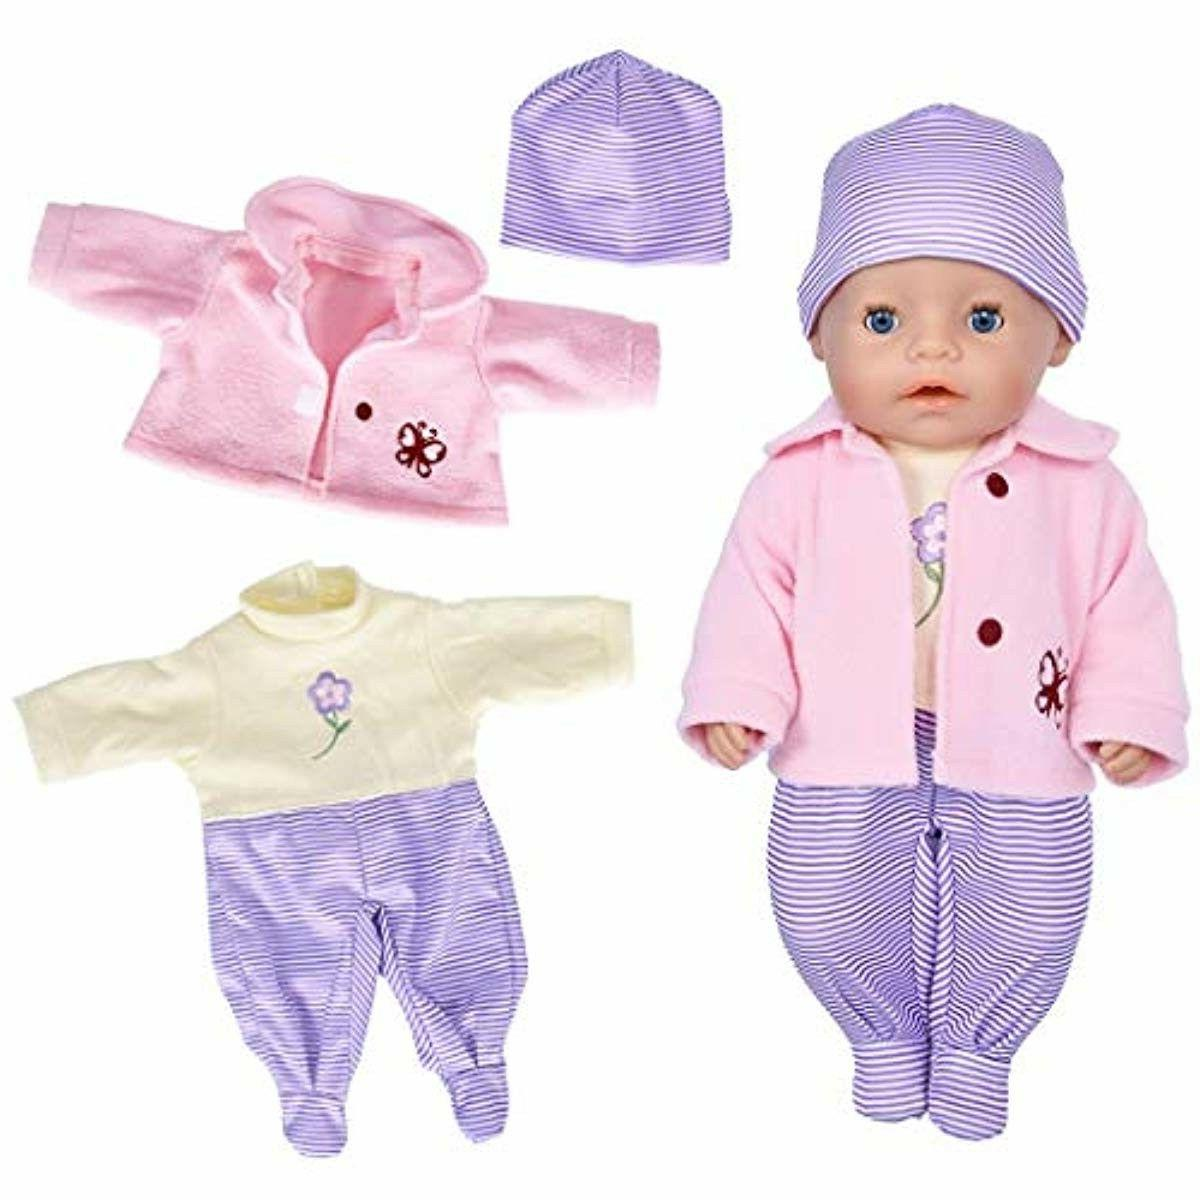 7 with and for 43cm Baby Dolls/ Bitty